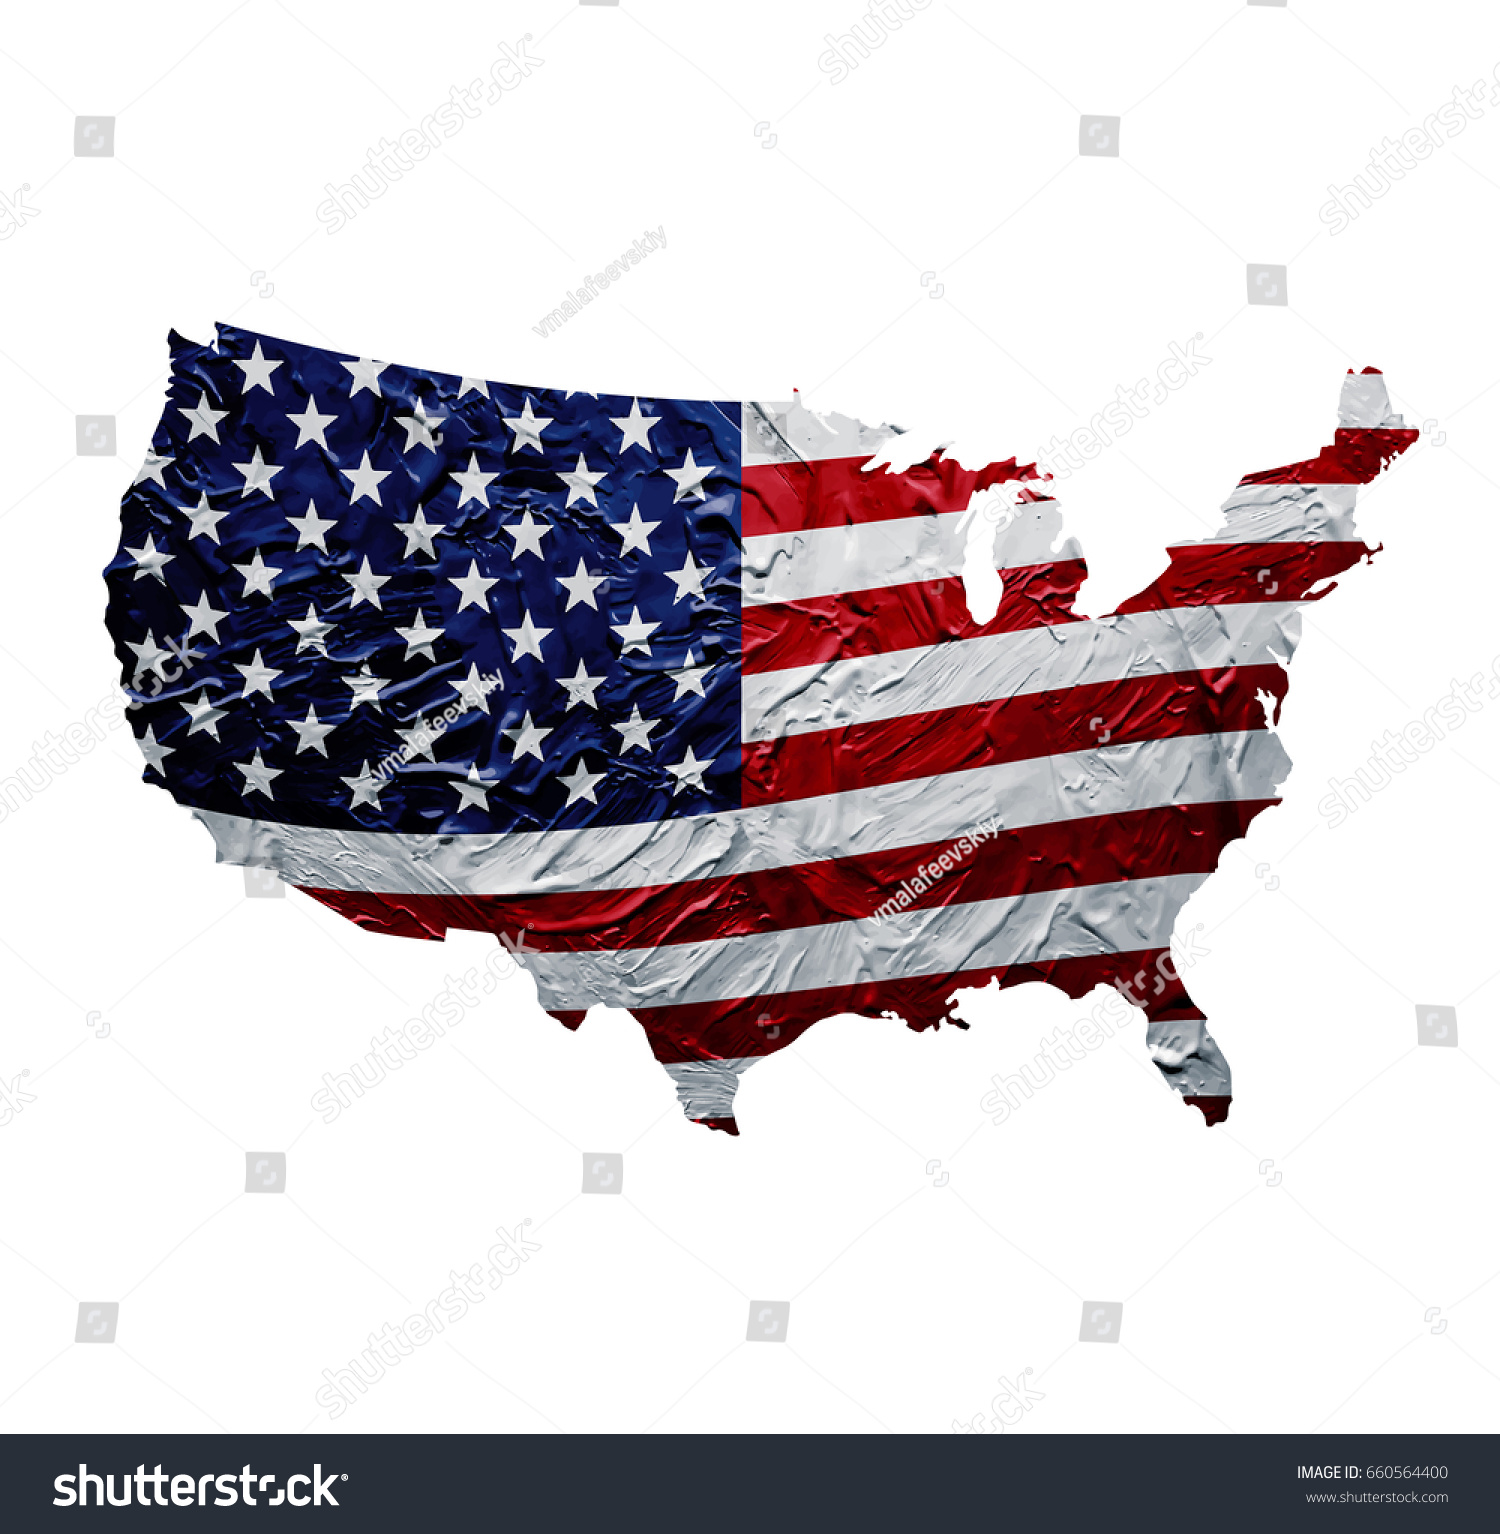 USA Map With Painted American Flag Texture